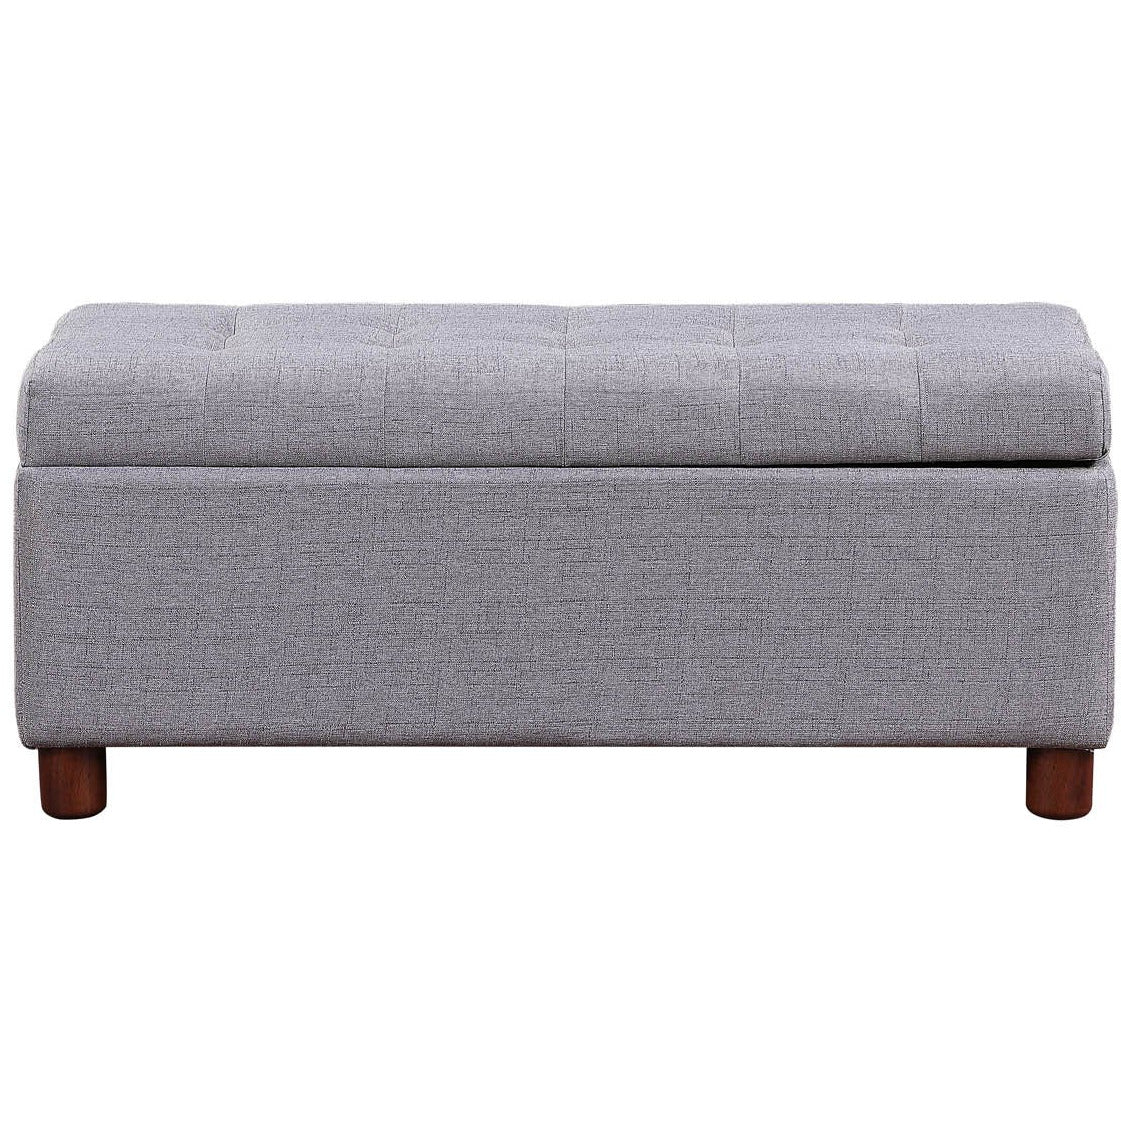 39'' Storage Bench Tufted Linen Fabric Ottoman Storage Bench BH036590